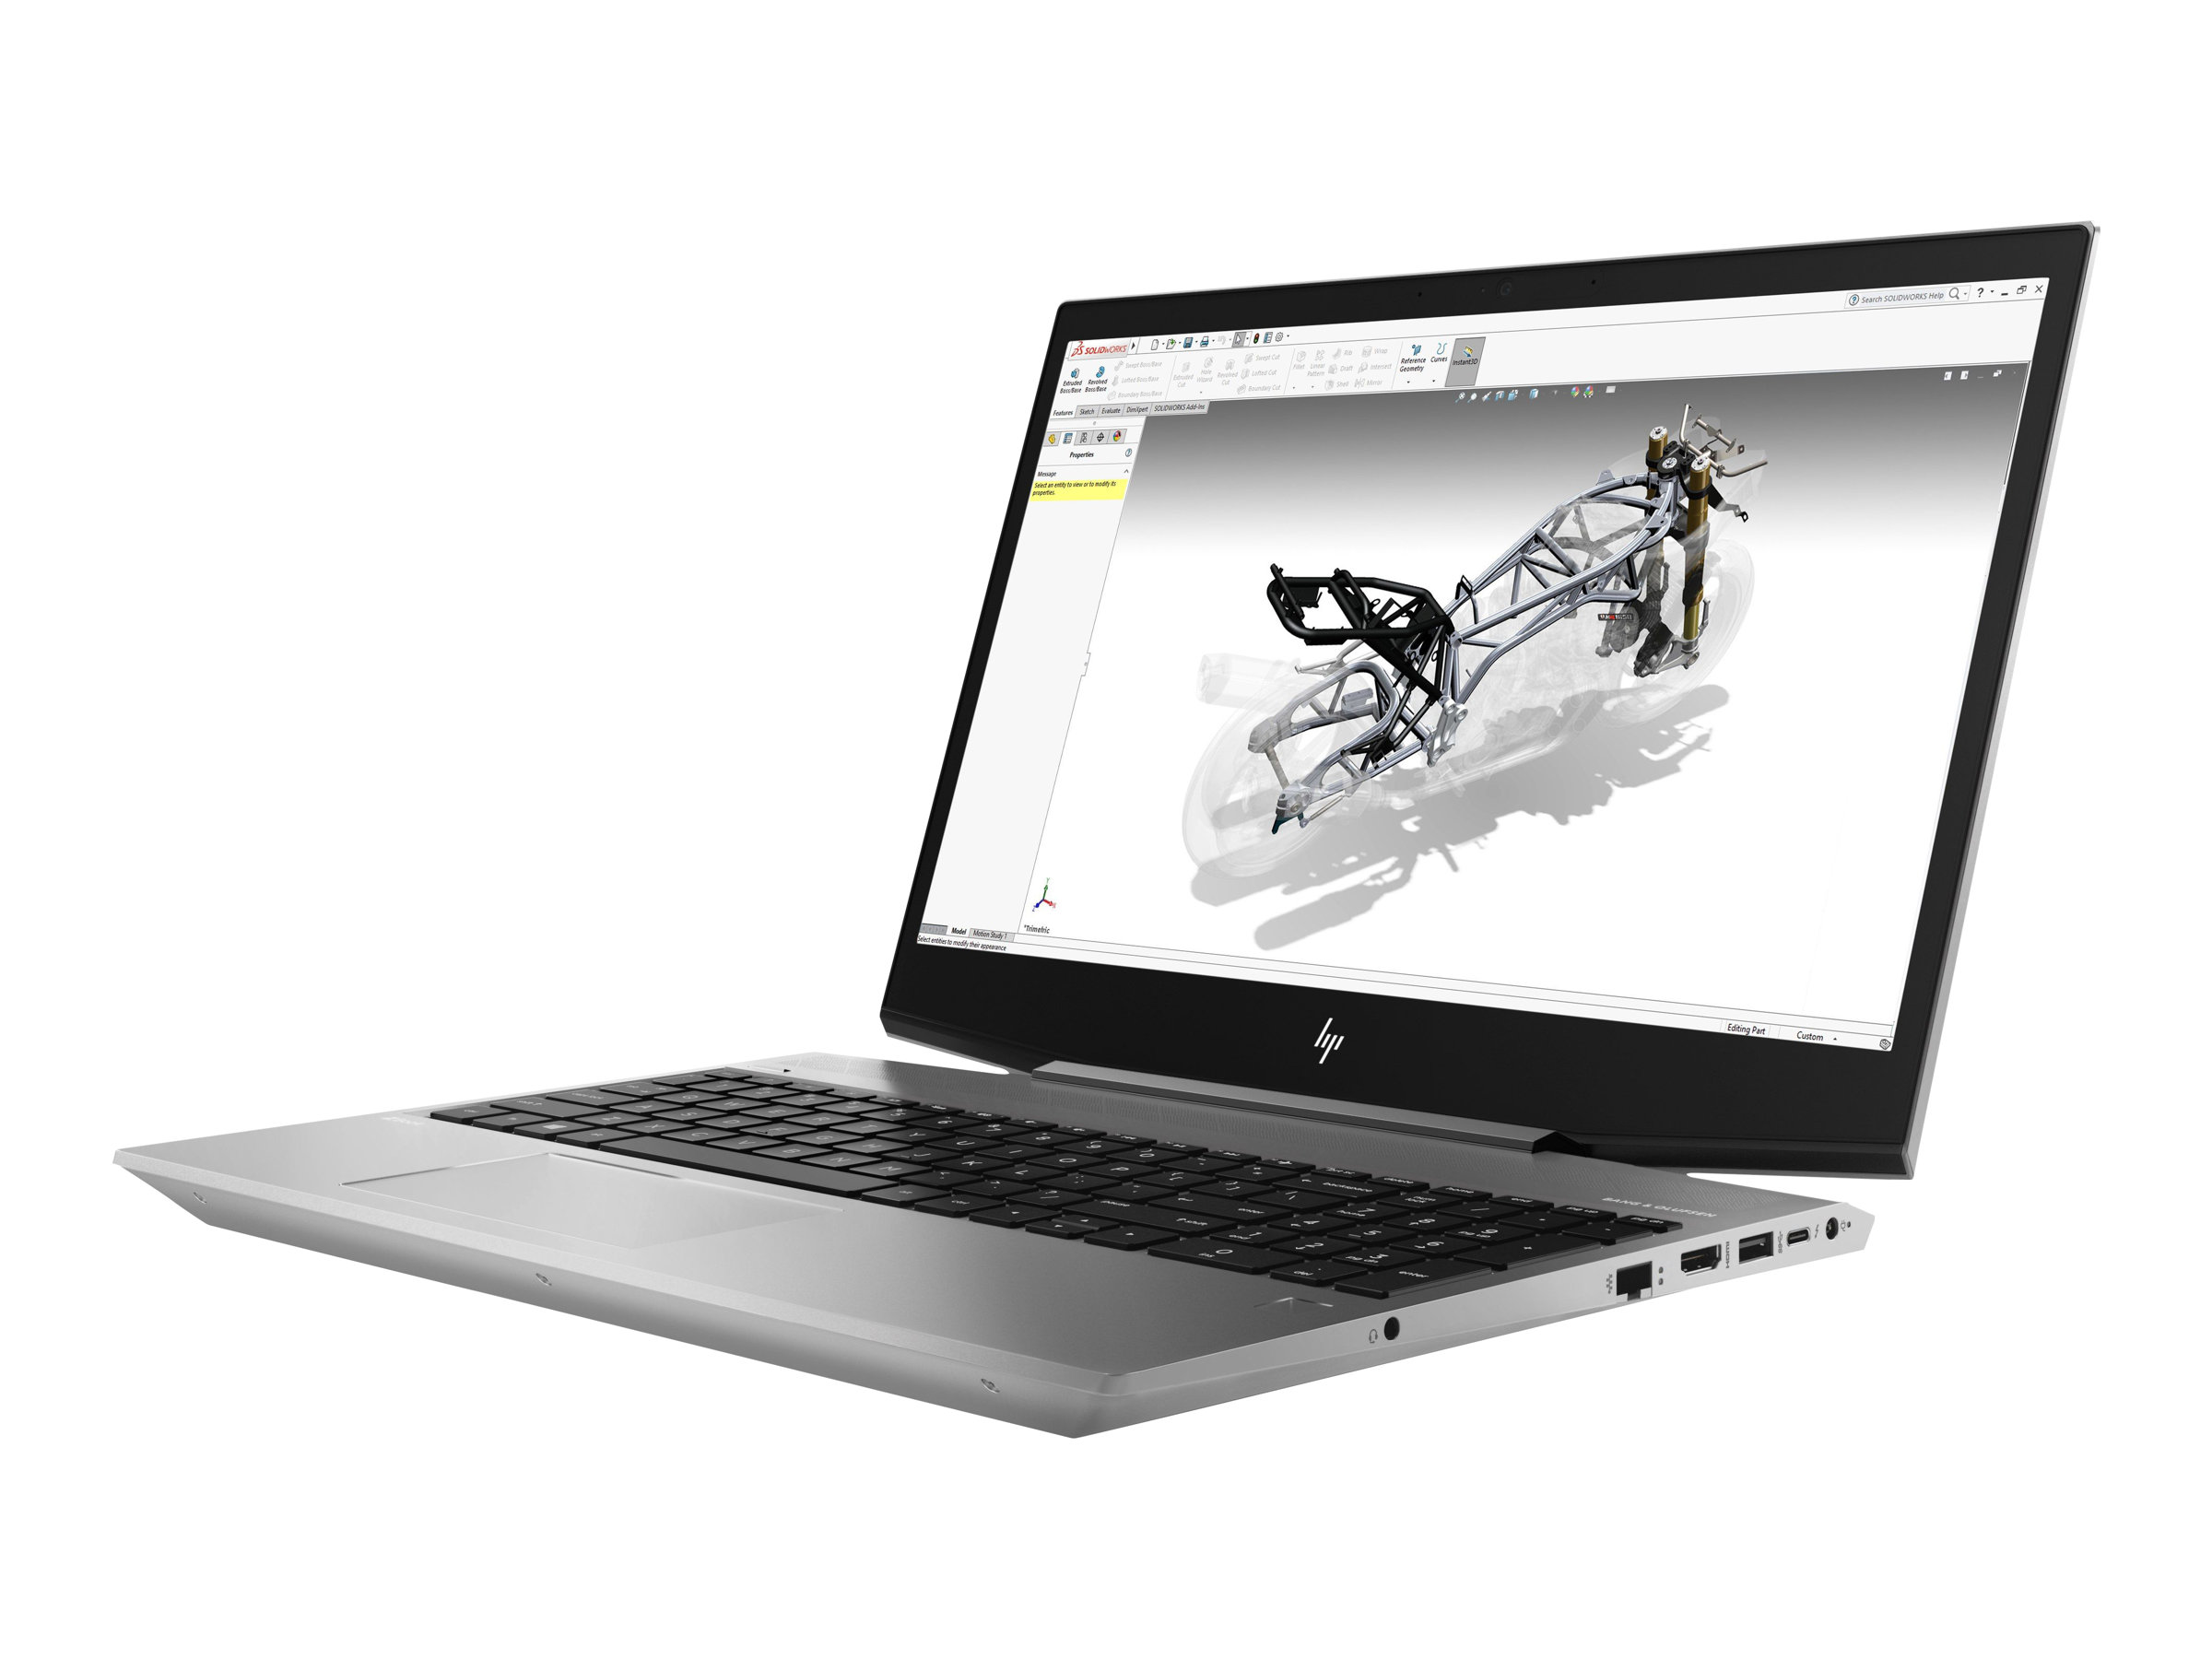 """HP ZBook 15v G5 Mobile Workstation - 15.6"""" - Core i5 8300H - 8 GB RAM - 1 TB HDD - US"""